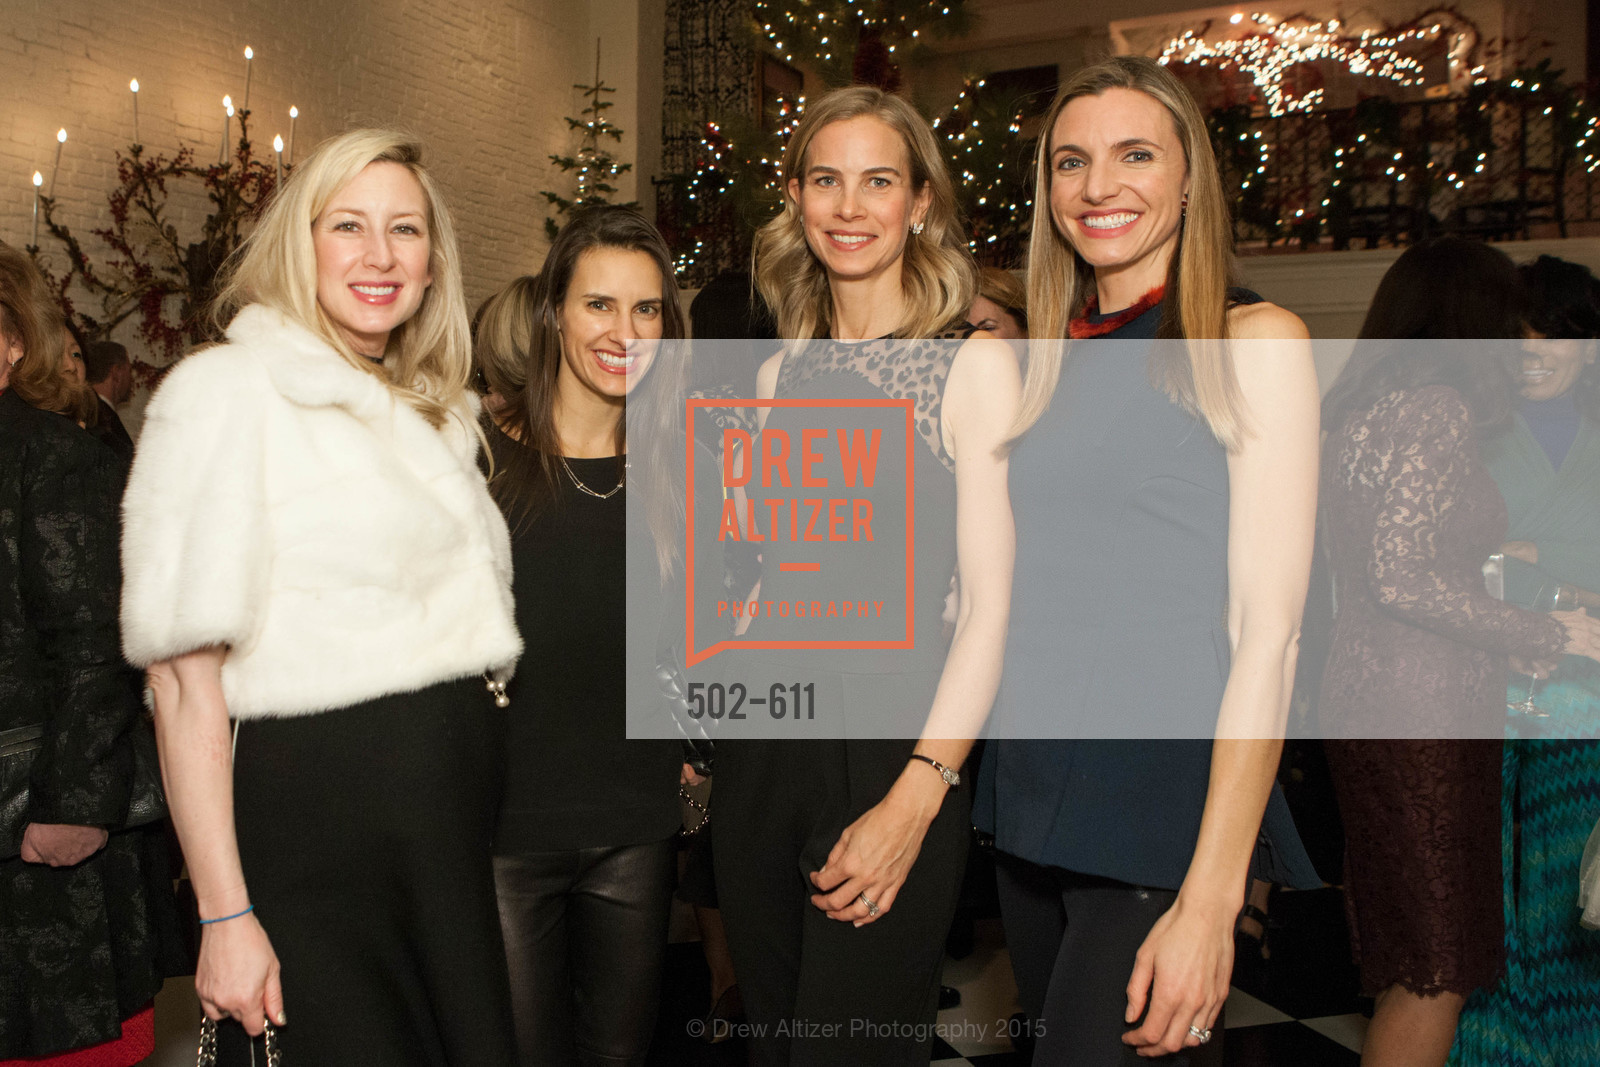 Lydia Bergman, Patricia Dassios, Hannah Komolli, Marisa Avansino, San Francisco Ballet Auxiliary's Gala Launch party hosted by La Perla., VILLA TAVERA. 27 HOTALING PLACE, December 1st, 2015,Drew Altizer, Drew Altizer Photography, full-service agency, private events, San Francisco photographer, photographer california